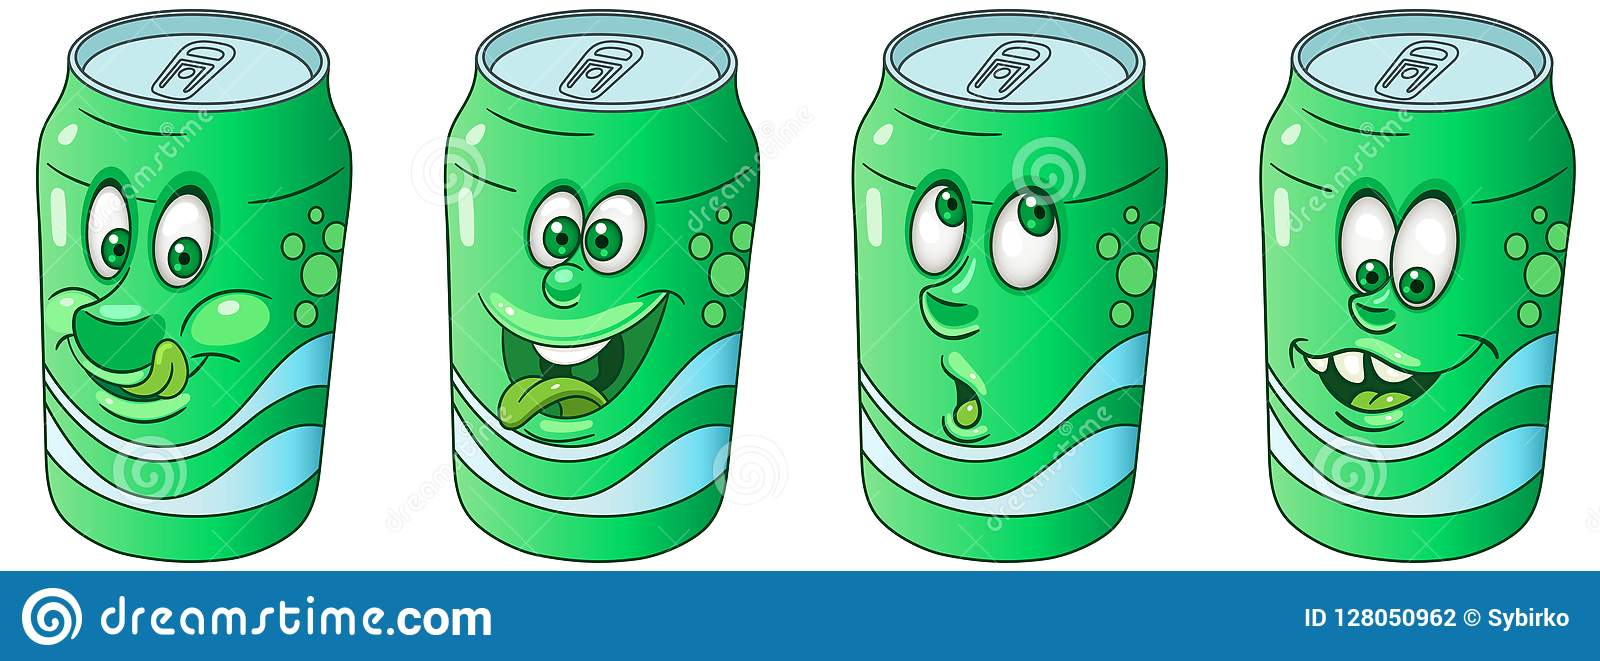 Can of soda coloring page - Coloringcrew.com | 661x1600